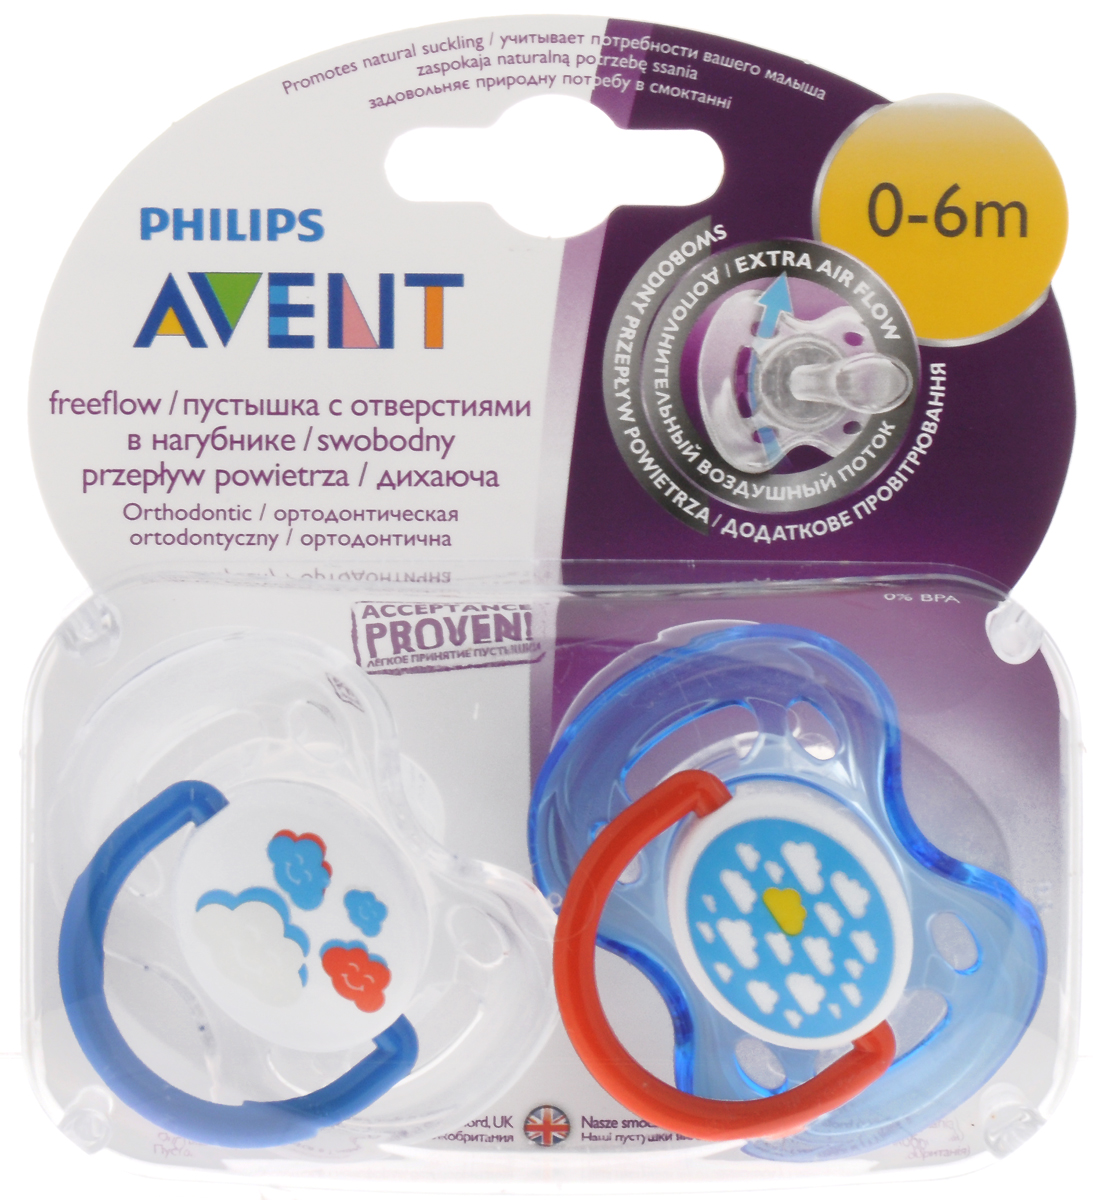 Philips Avent Пустышка серия FreeFlow SCF172/18 облака, 2 шт., 0-6 мес. avent philips freeflow 6 18 мес уп 2шт bpa free avent авент